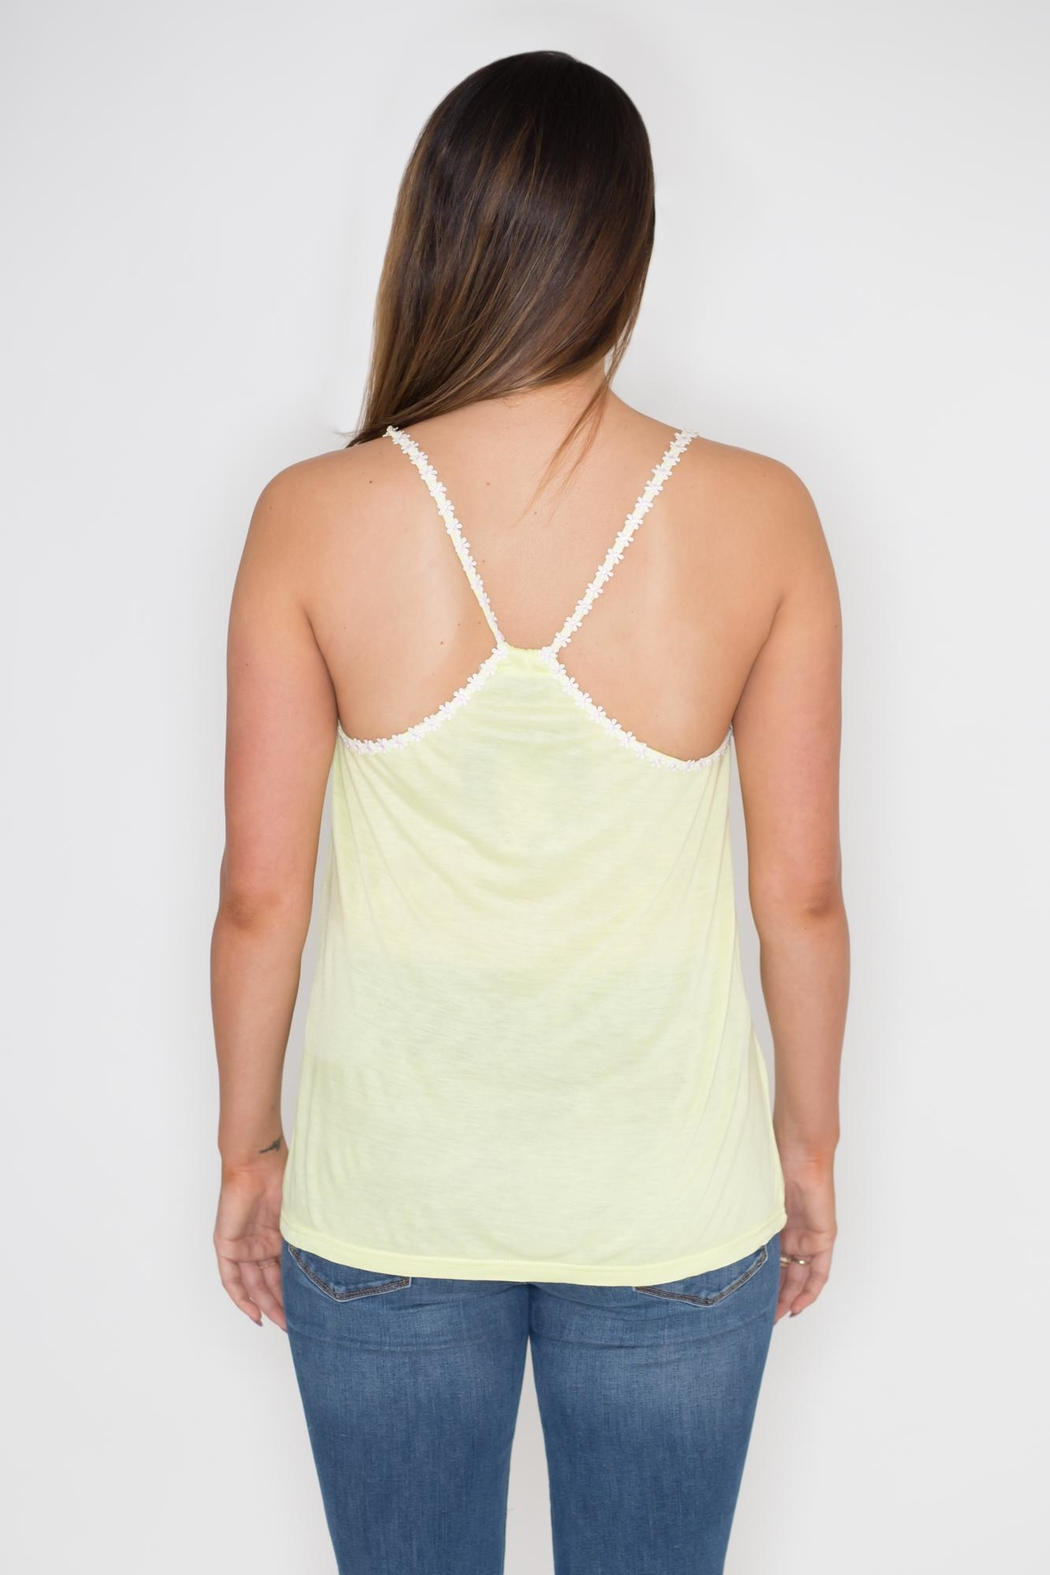 Very J Daisy Trim Tank Top - Side Cropped Image